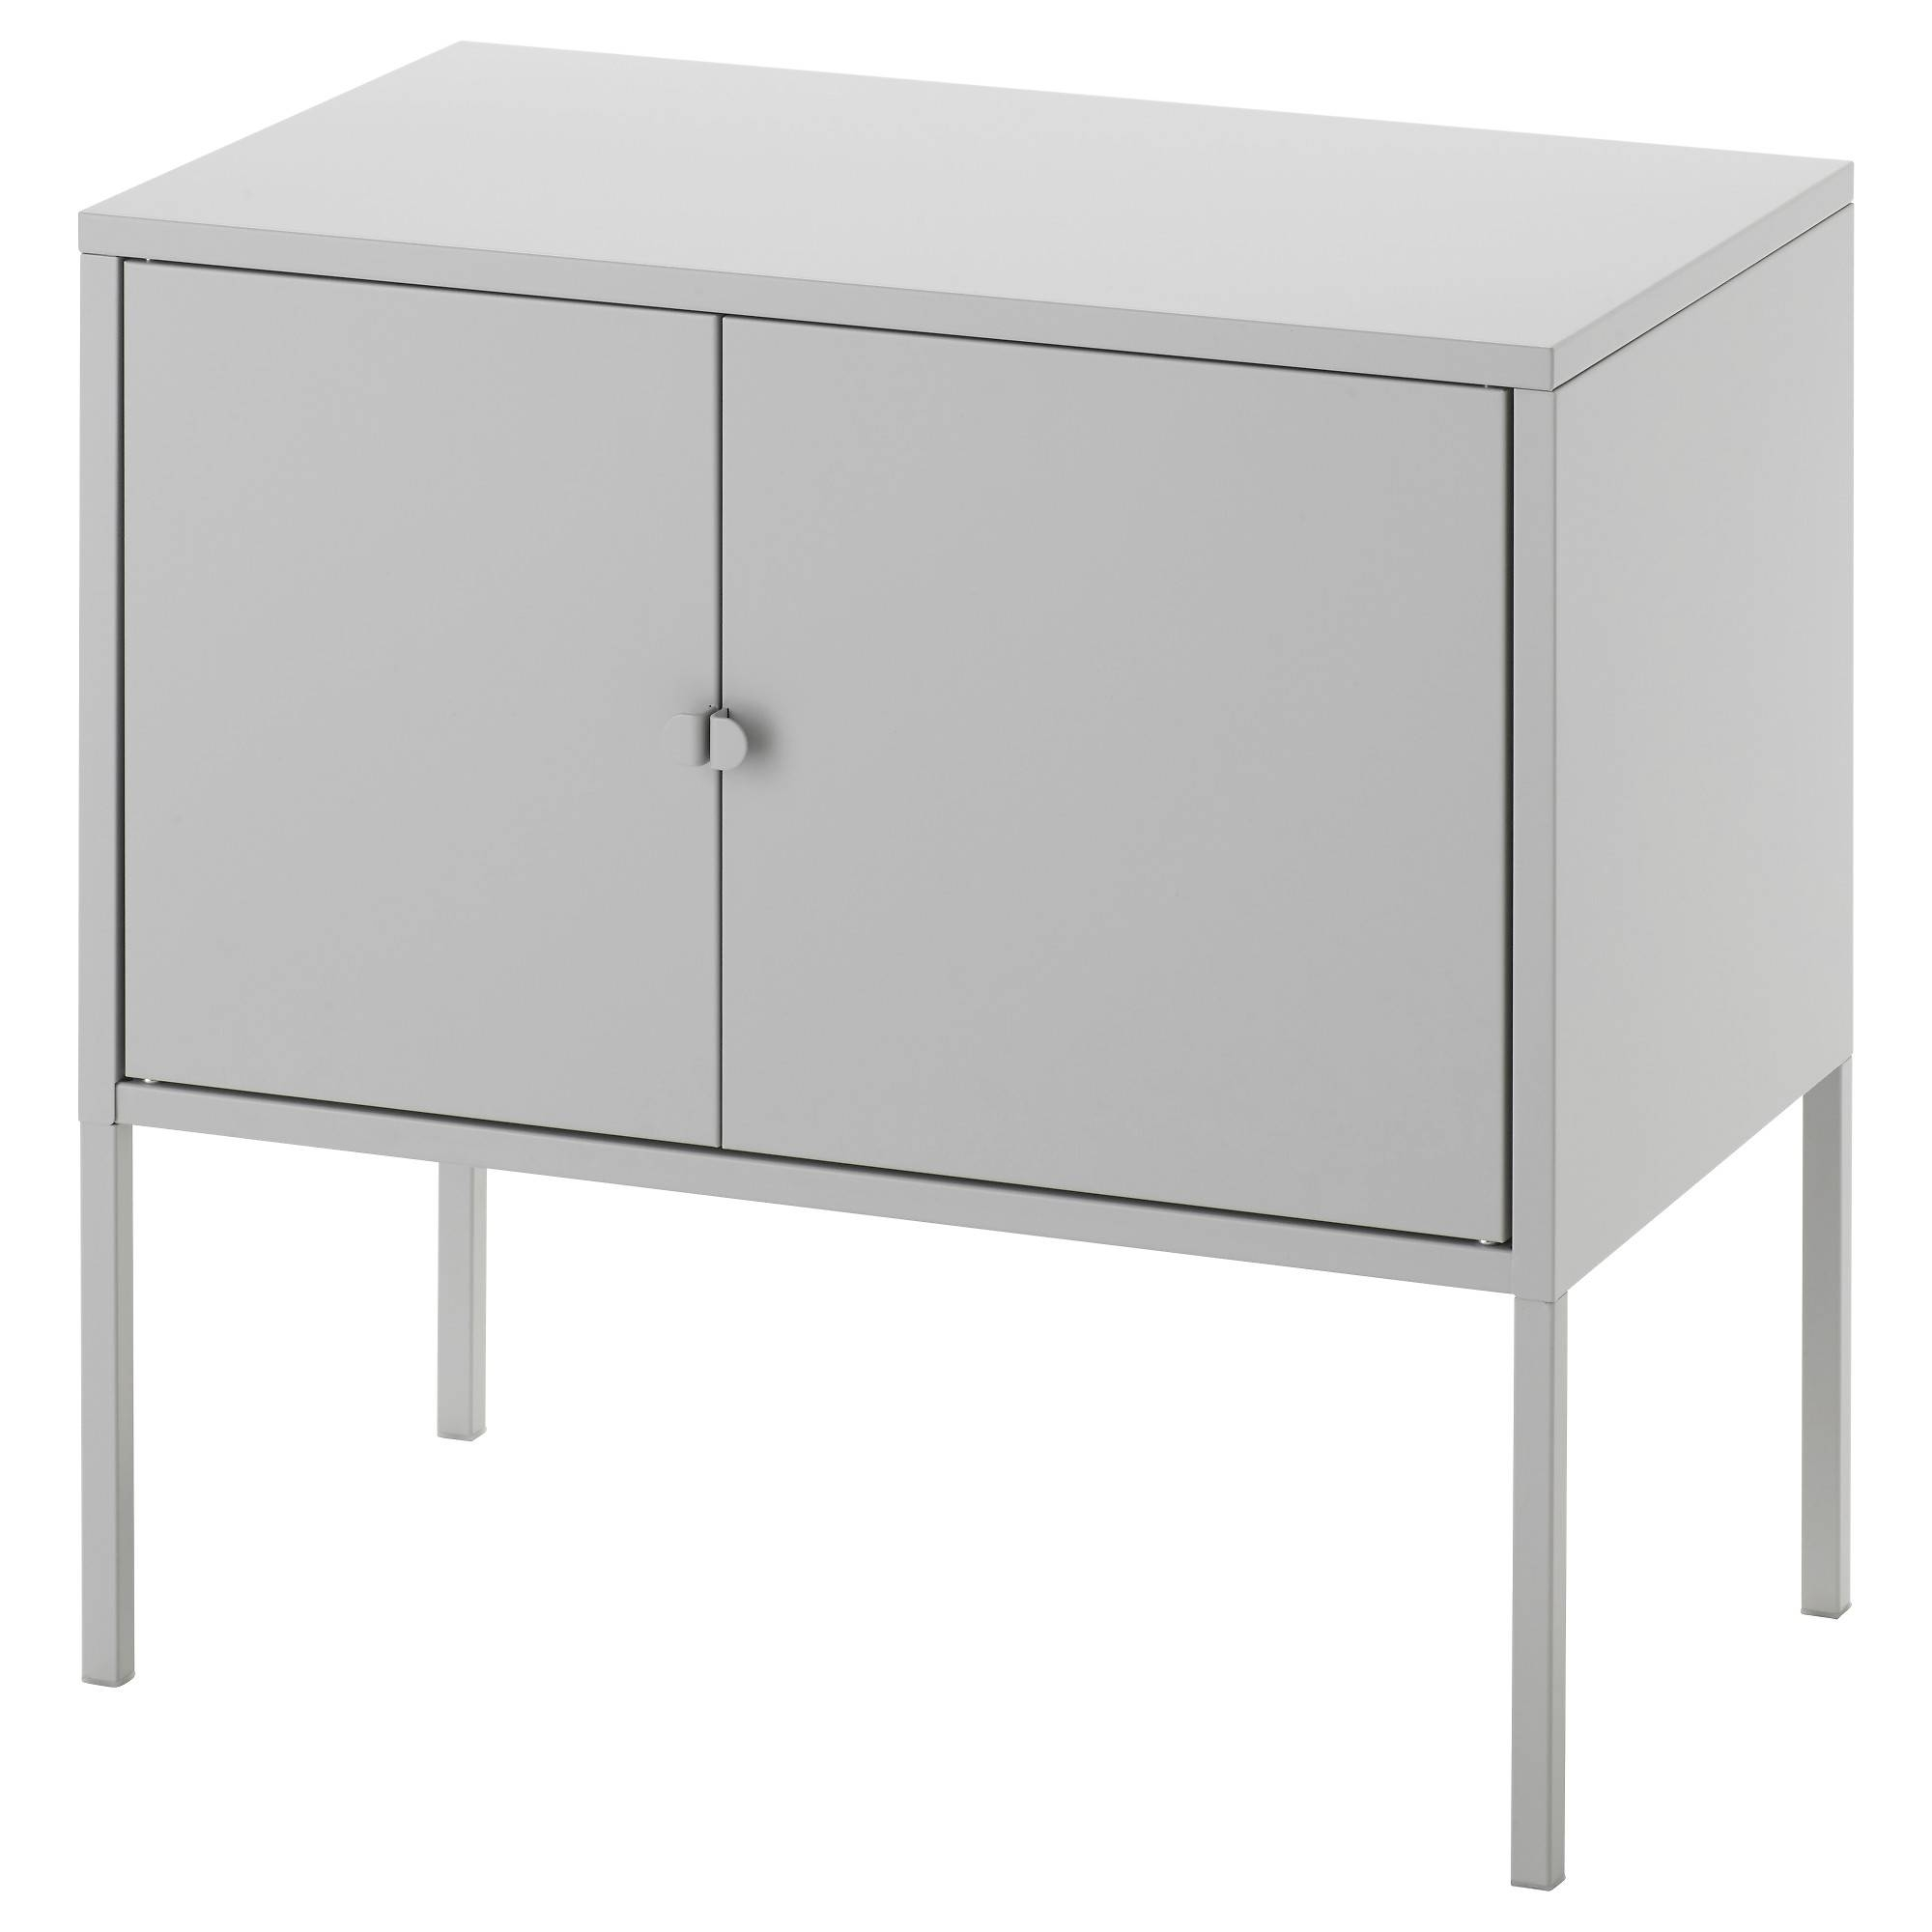 Storage Cabinets & Storage Cupboards | Ikea intended for White Gloss Ikea Sideboards (Image 14 of 15)